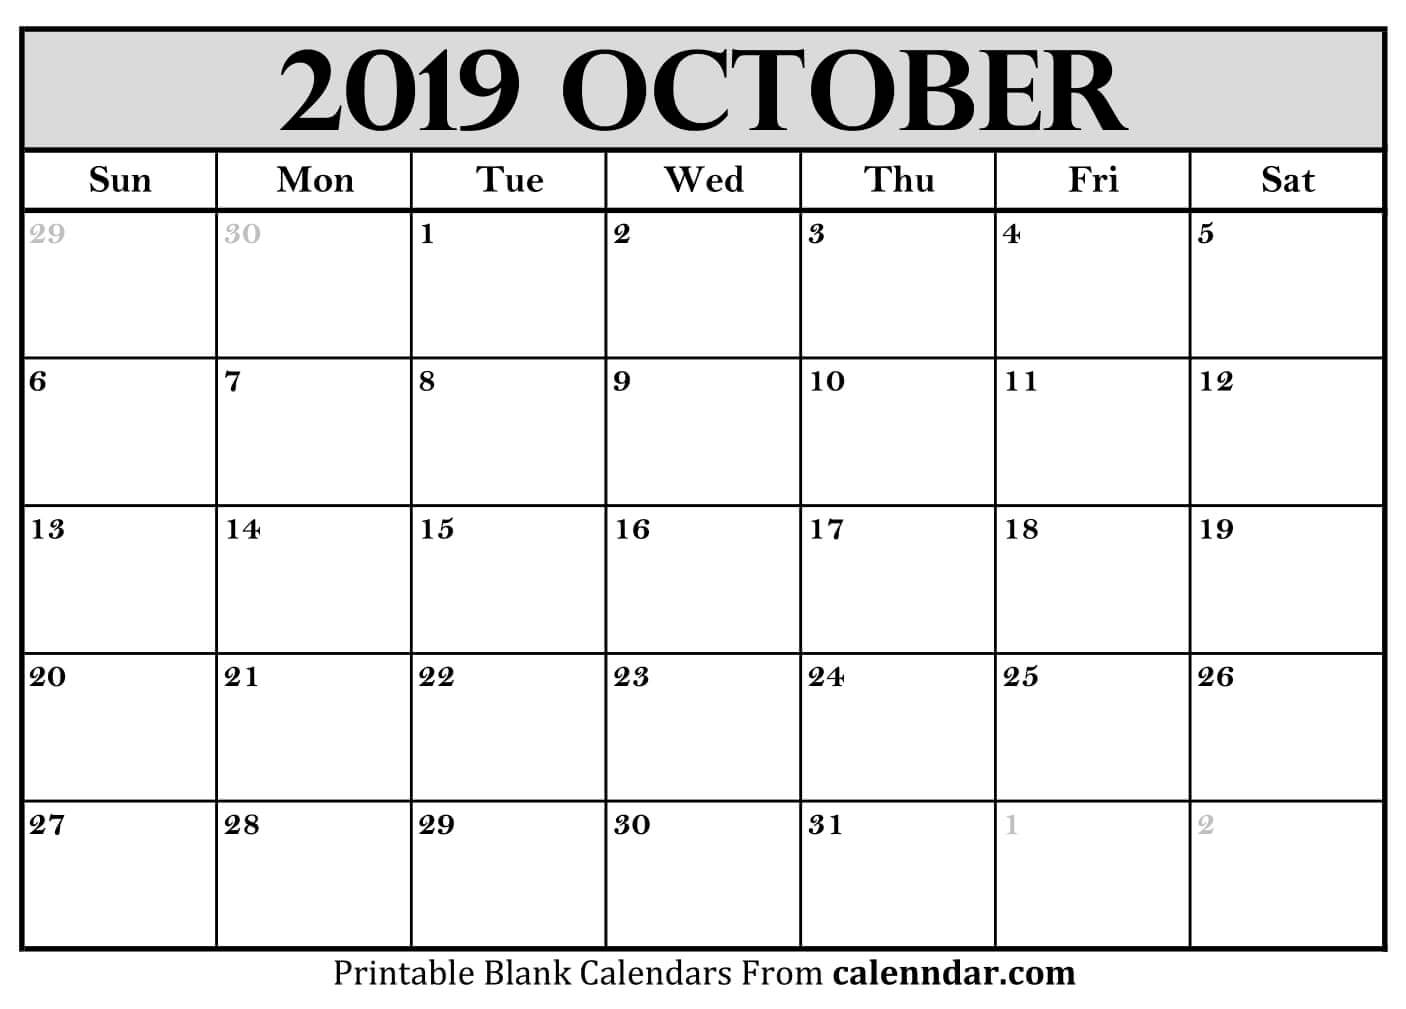 Template of October 2019 Calendar